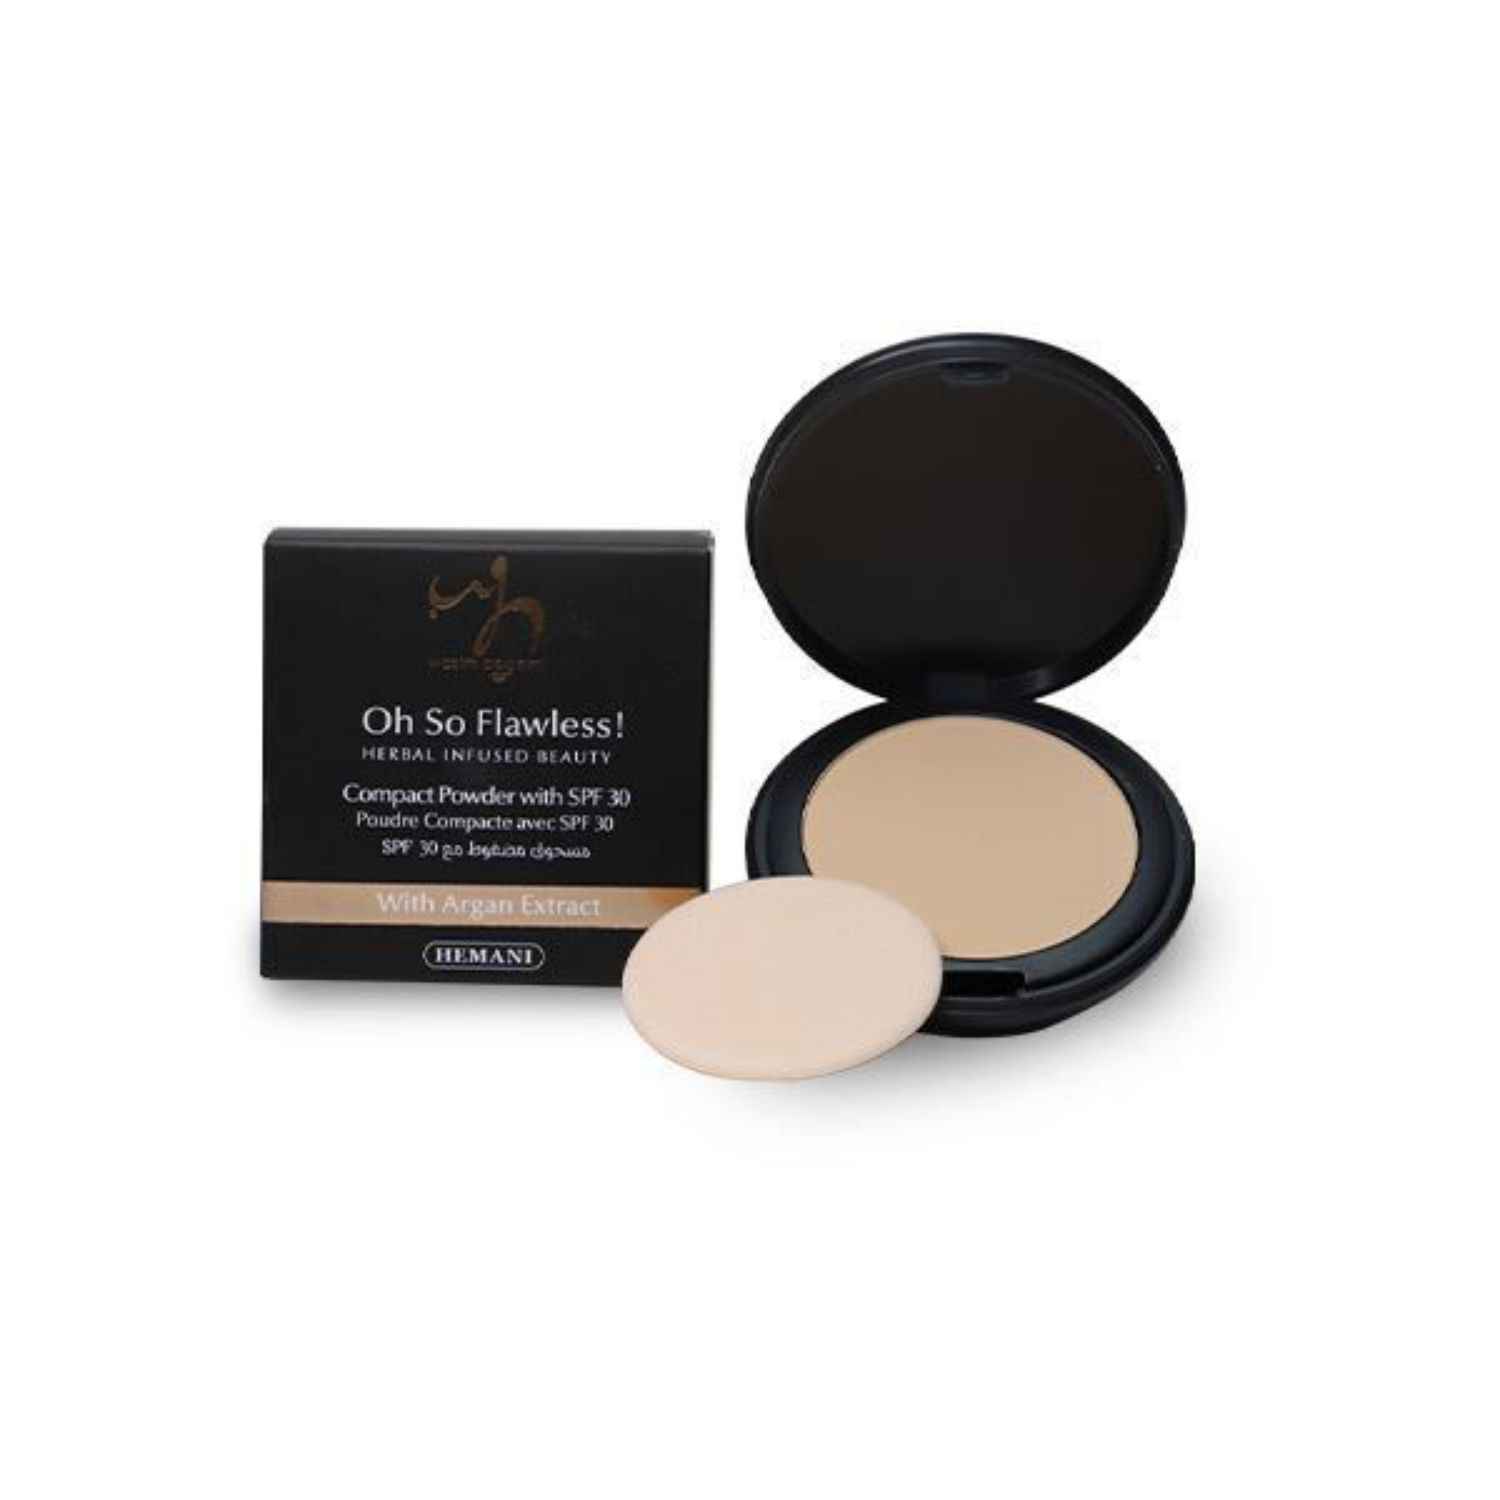 HERBAL INFUSED BEAUTY Compact Powder 229 Roasted Peanut